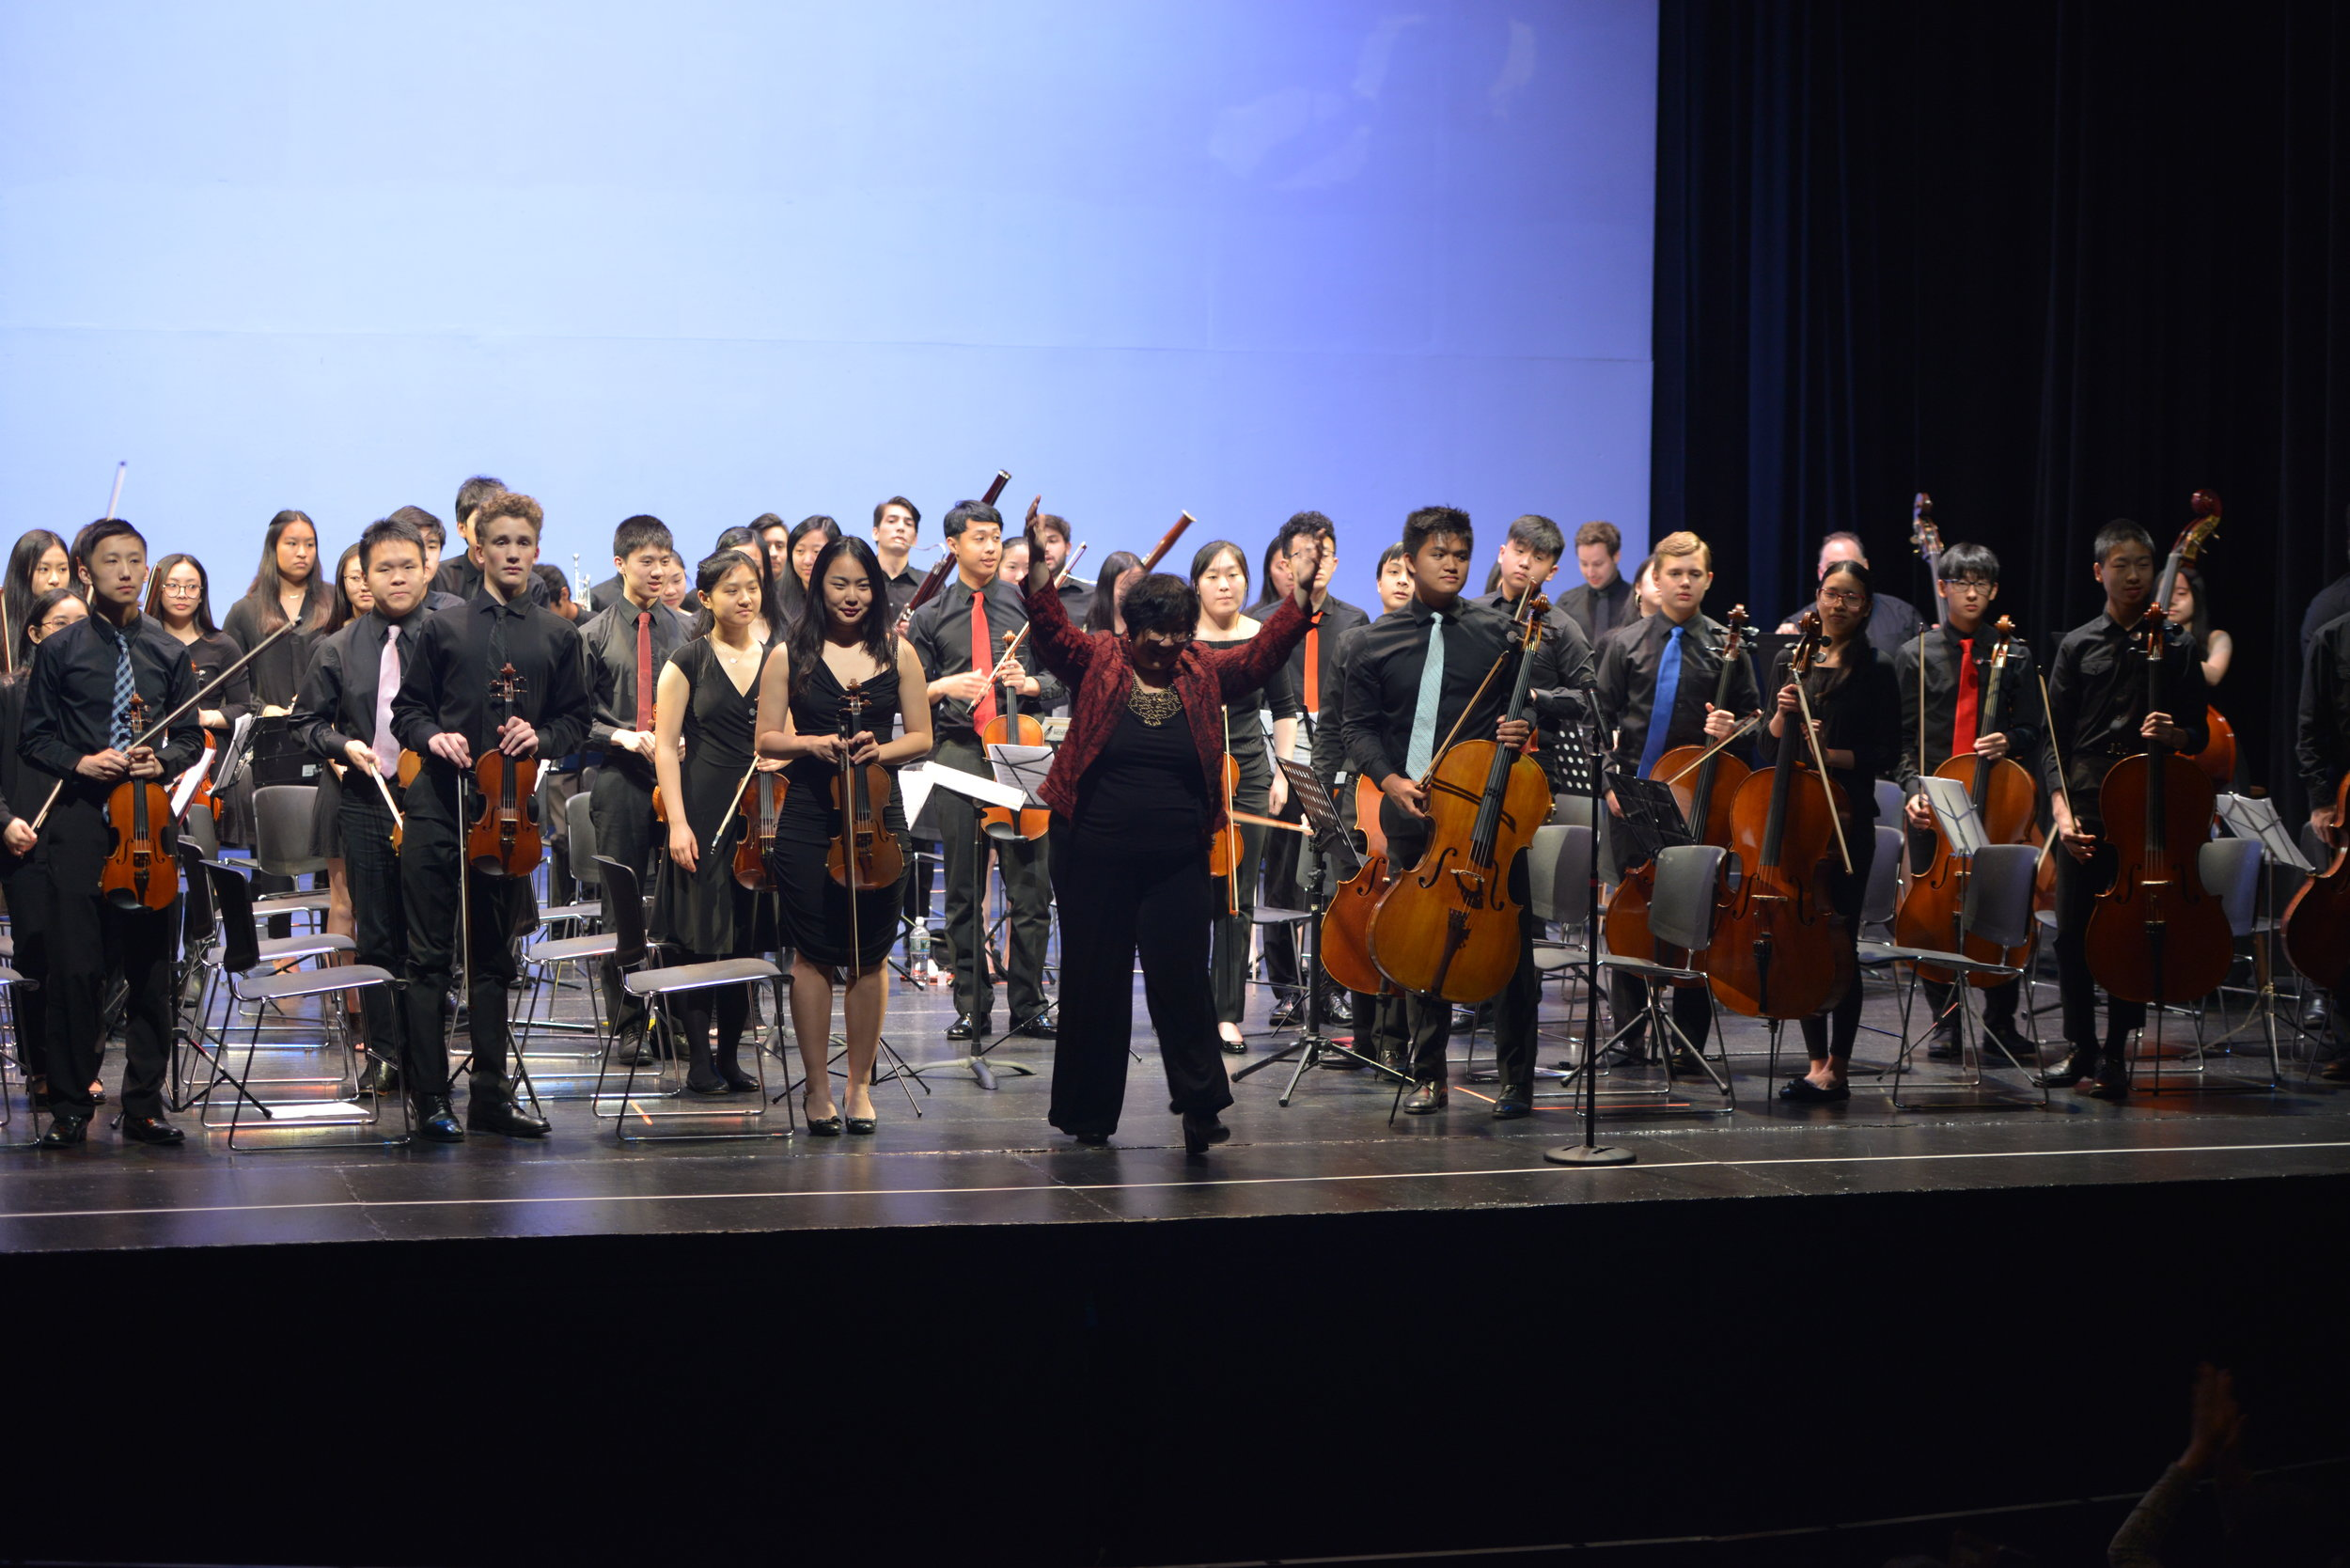 Final curtain call of the Sinfonia